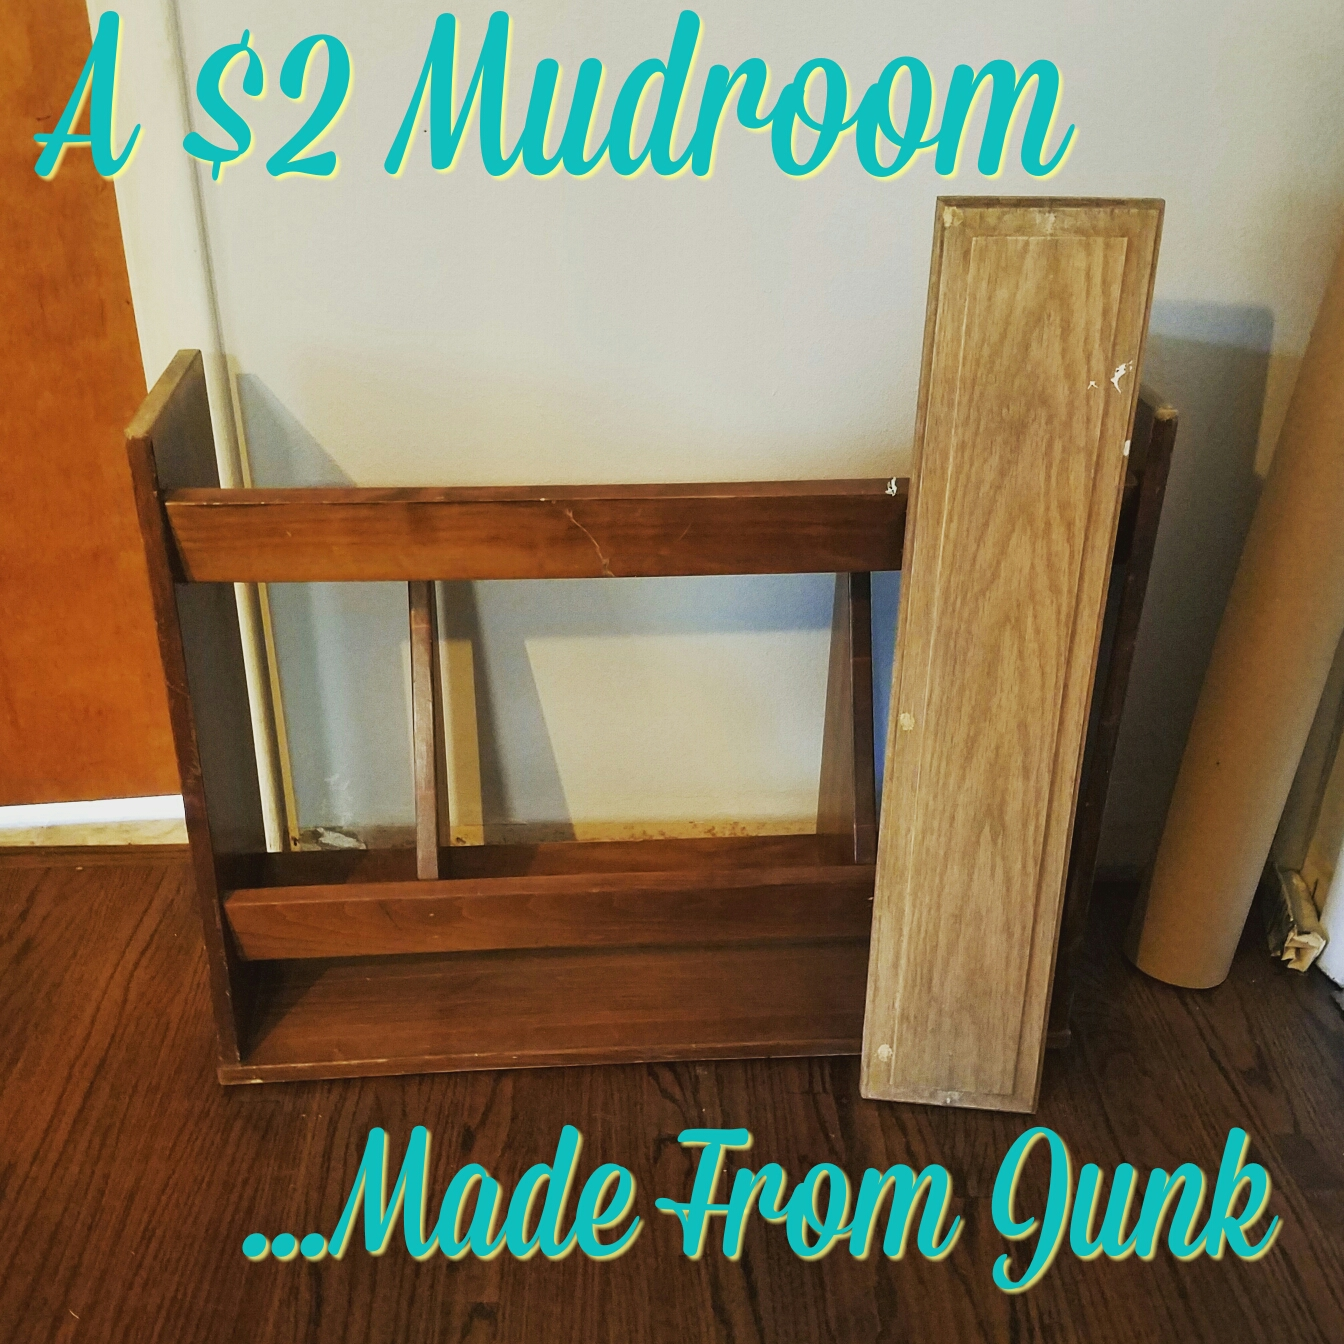 A $2 Mudroom Made From Junk